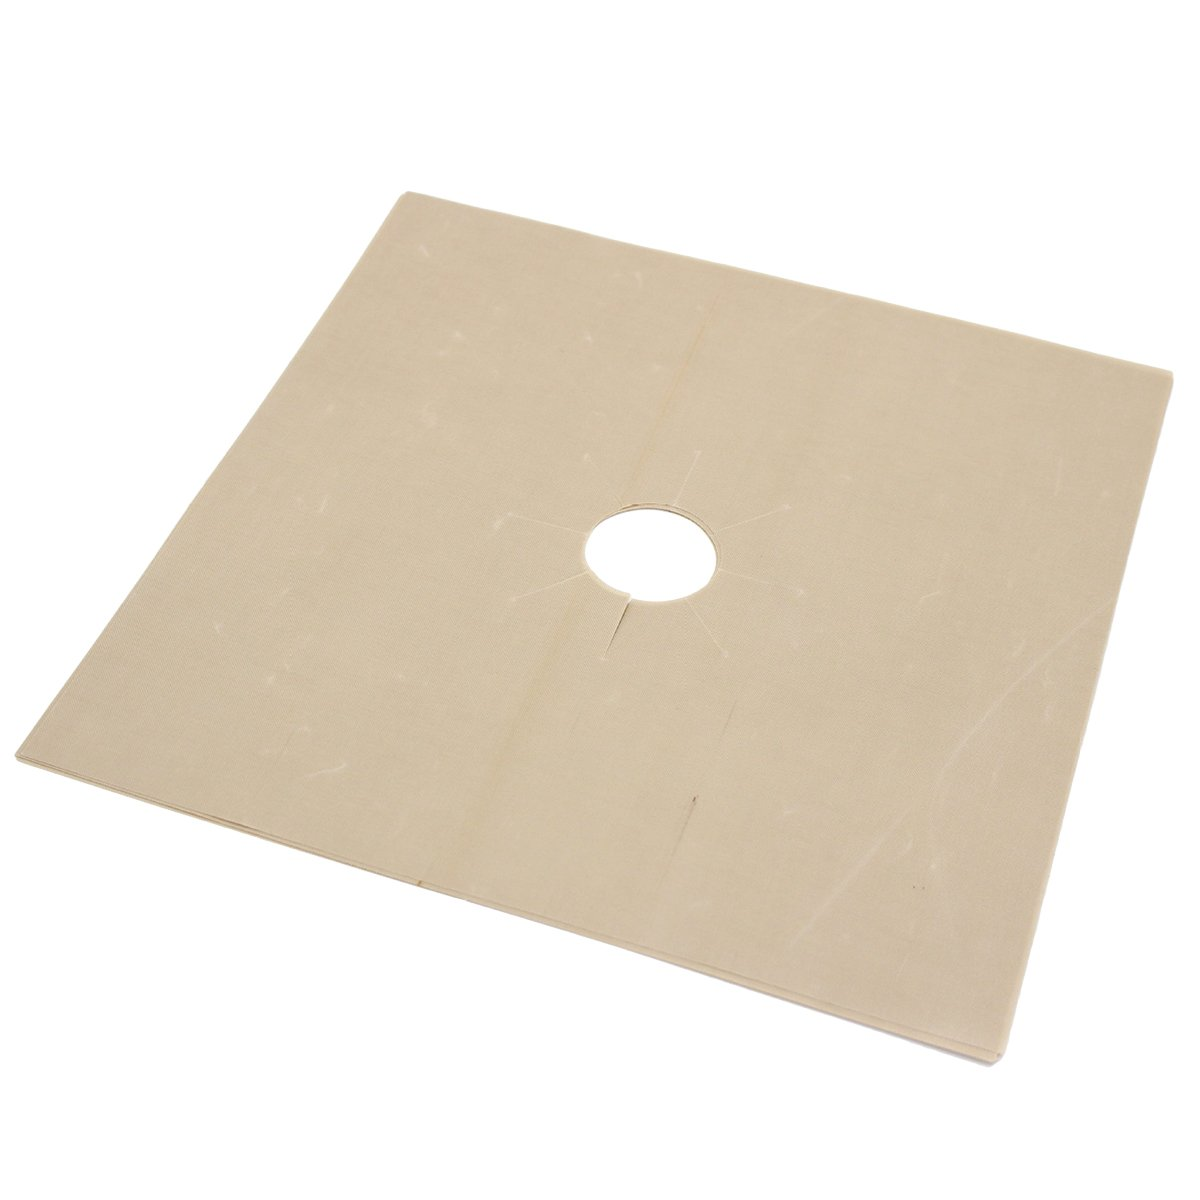 1pcs Universal Heavy Duty Oven Liner Gas Hob Protector Sheets (Beige) by BESTONZON (Image #2)